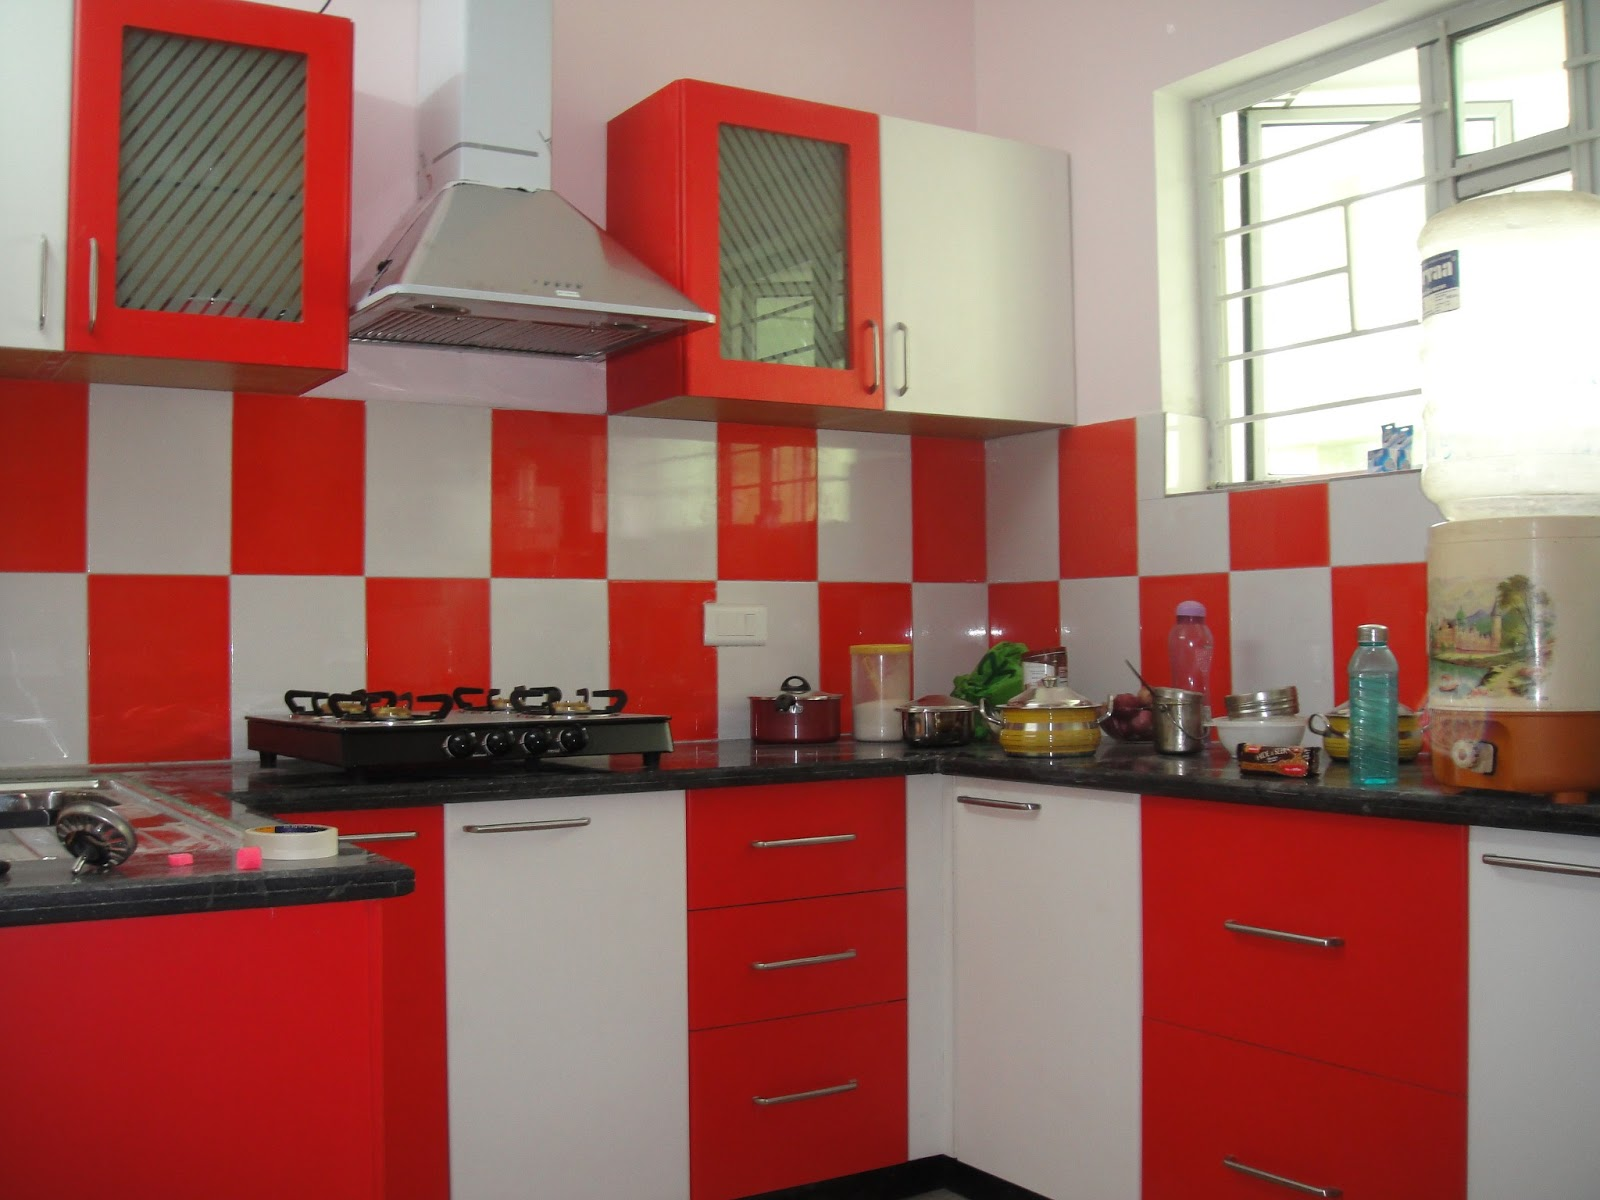 Kitchen Tiles In Chennai modular kitchen designs. modular kitchens in chennai chennai